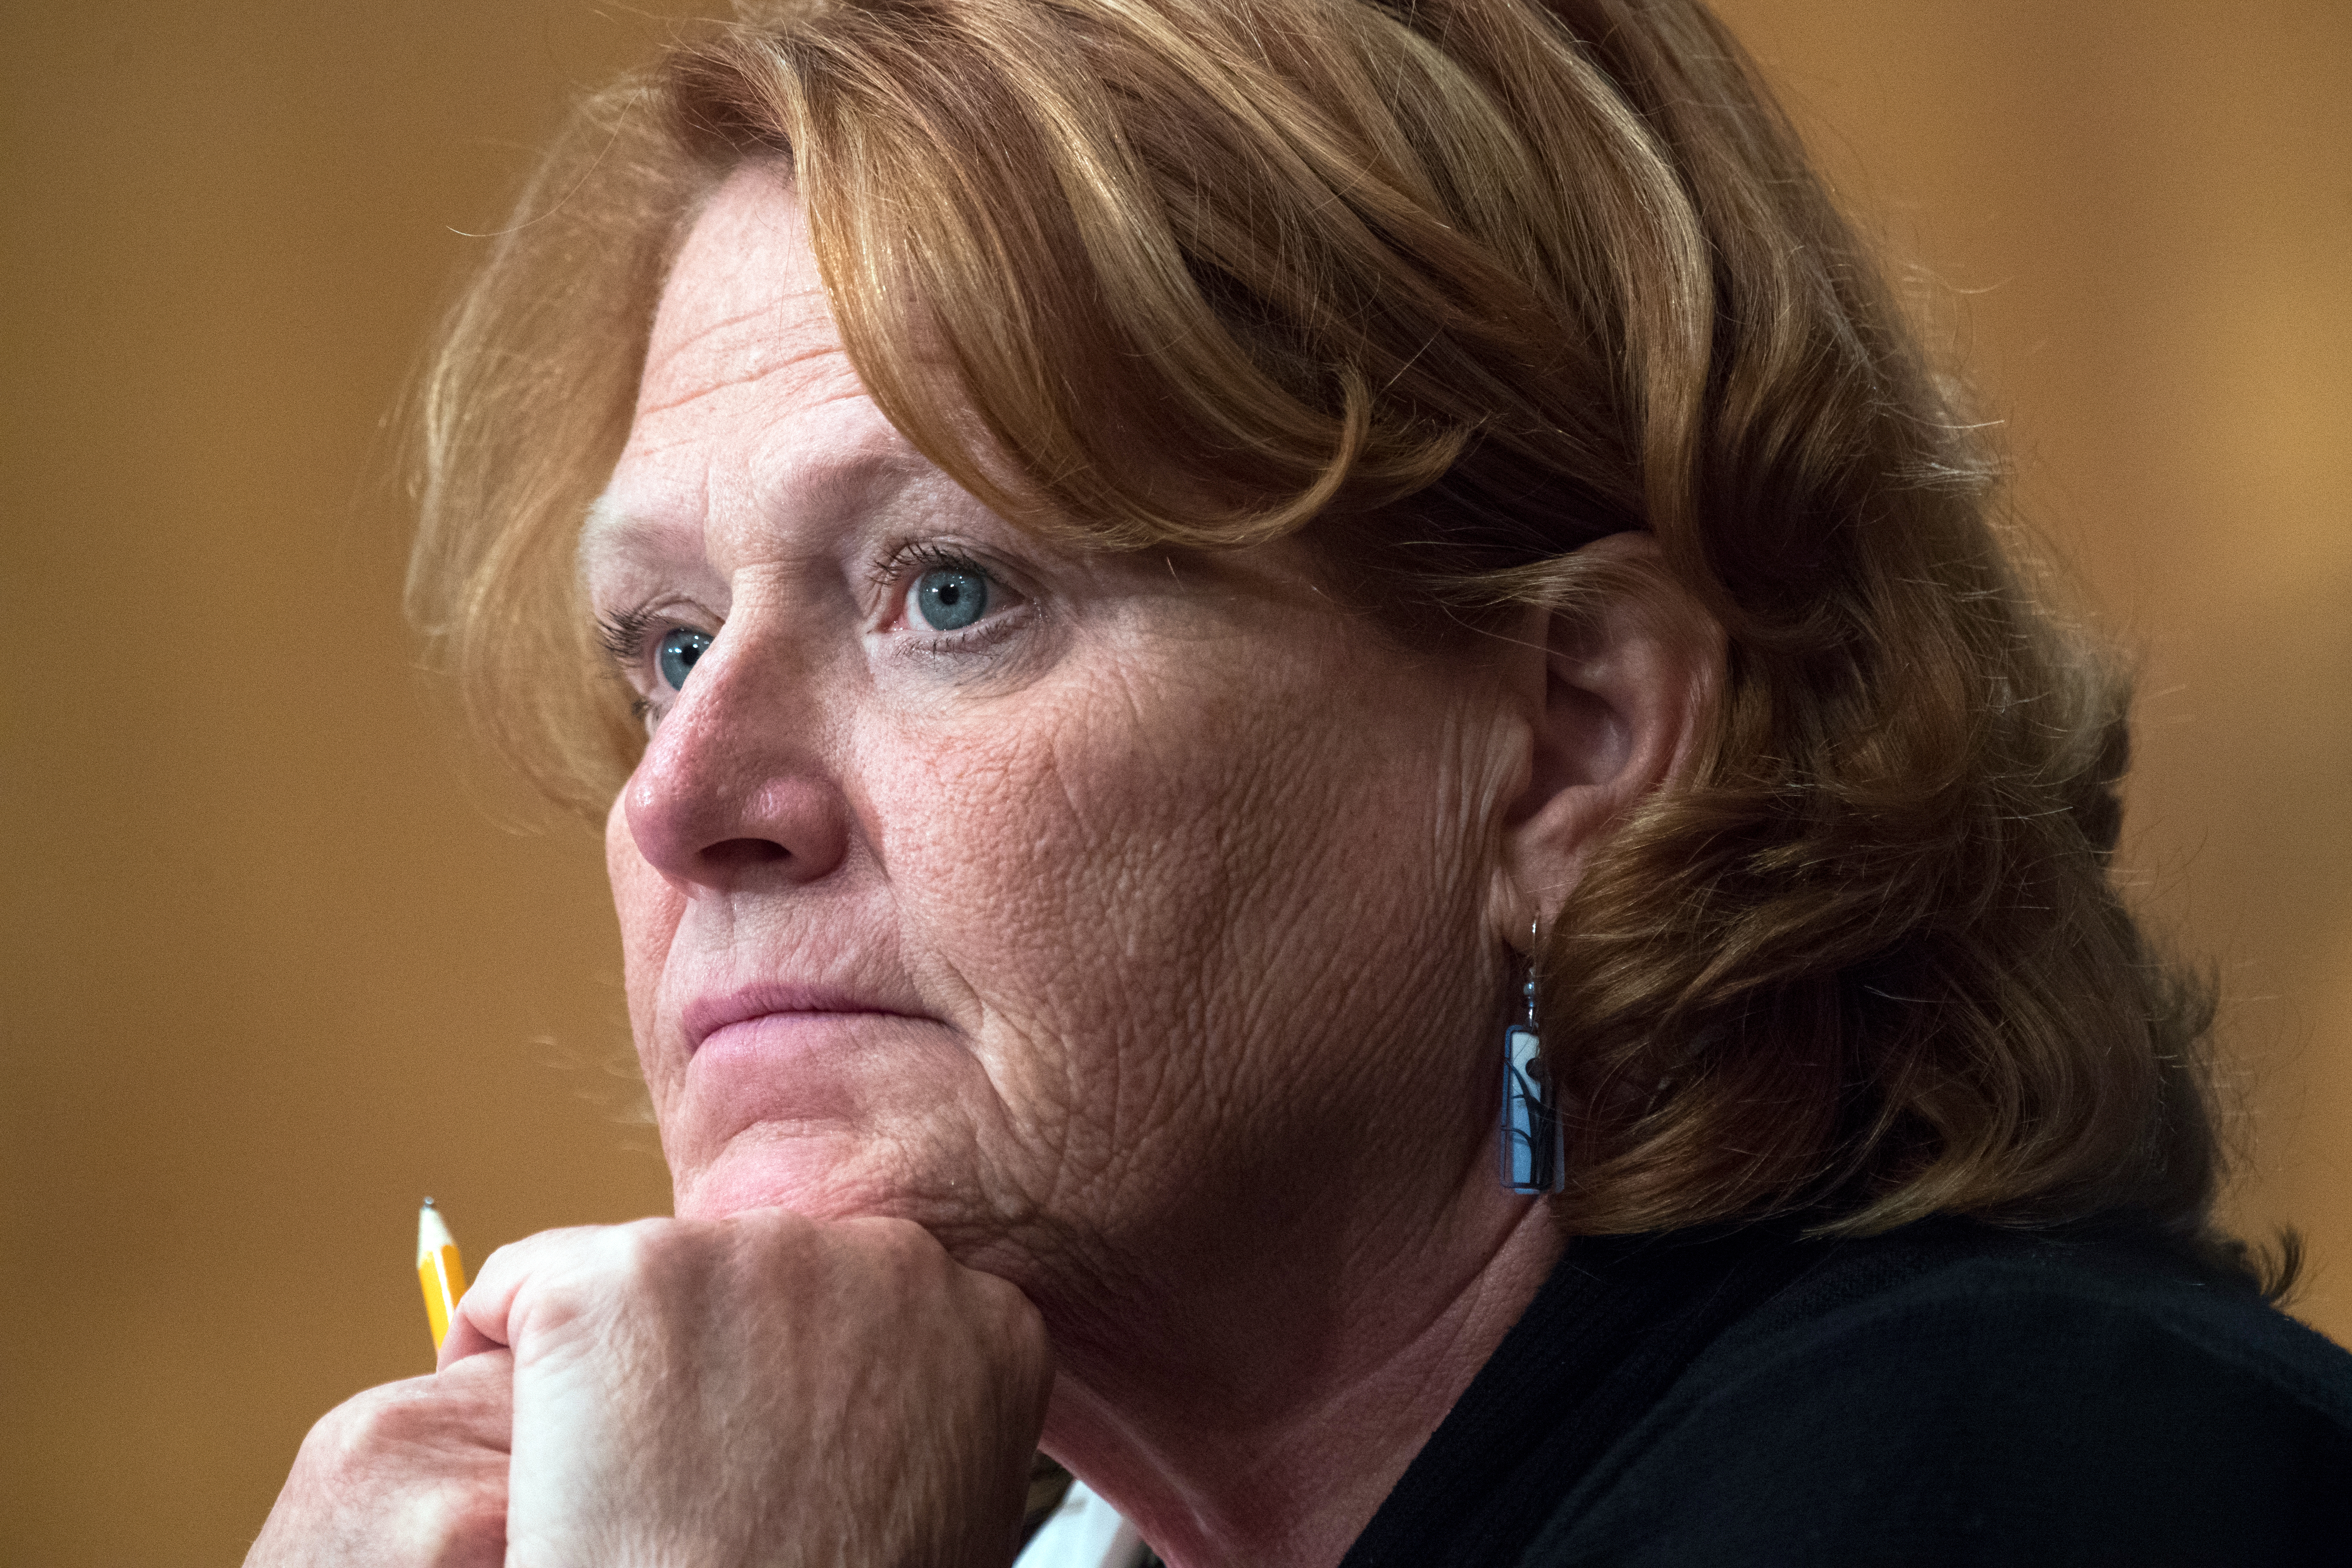 """UNITED STATES - OCTOBER 2: Sen. Heidi Heitkamp, D-N.D., attends a Senate Banking Committee hearing in Dirksen Building titled """"Implementation of the Economic Growth, Regulatory Relief, and Consumer Protection Act,"""" on October 2, 2018. (Photo By Tom Williams/CQ Roll Call)"""